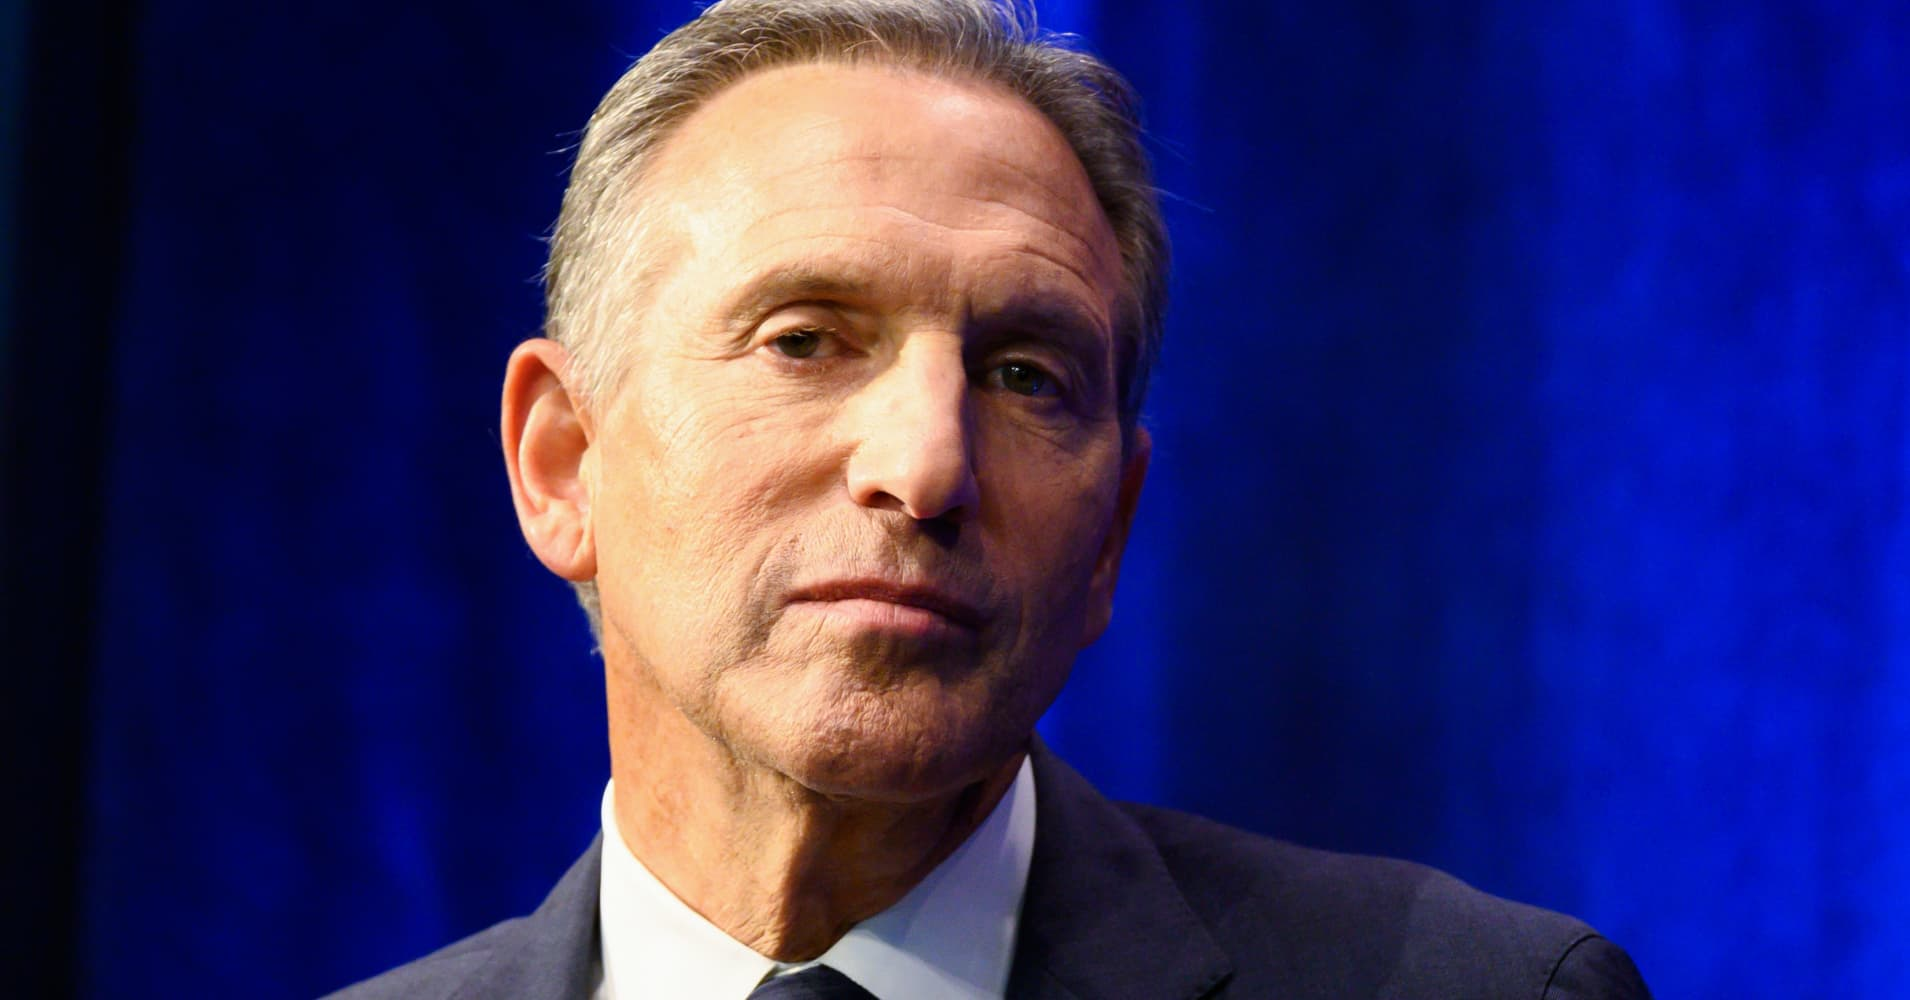 Warren Buffett: 'It would be a real mistake' if former Starbucks CEO Howard Schultz ran for president as an independent